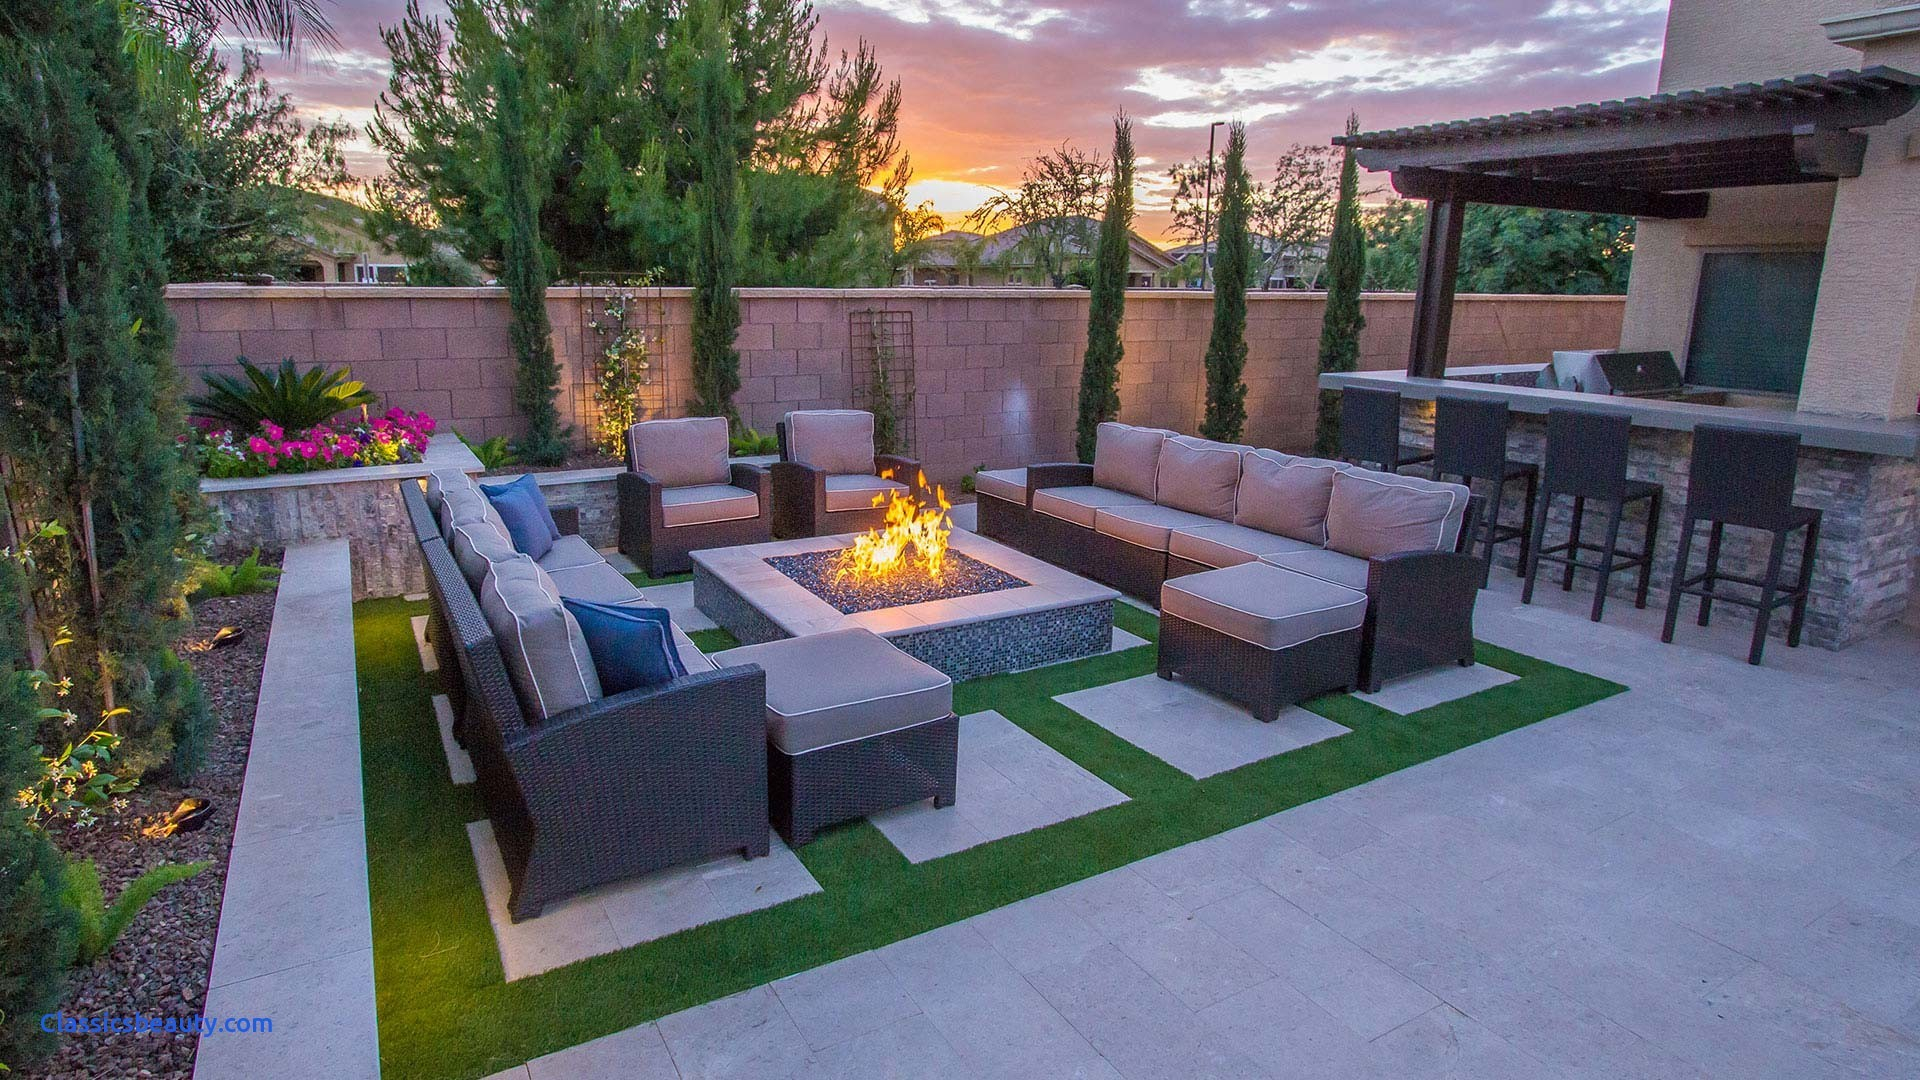 Backyard Hardscape Ideas Awesome Design Turismoestrategicoco within 10 Some of the Coolest Concepts of How to Build Hardscape Backyard Ideas